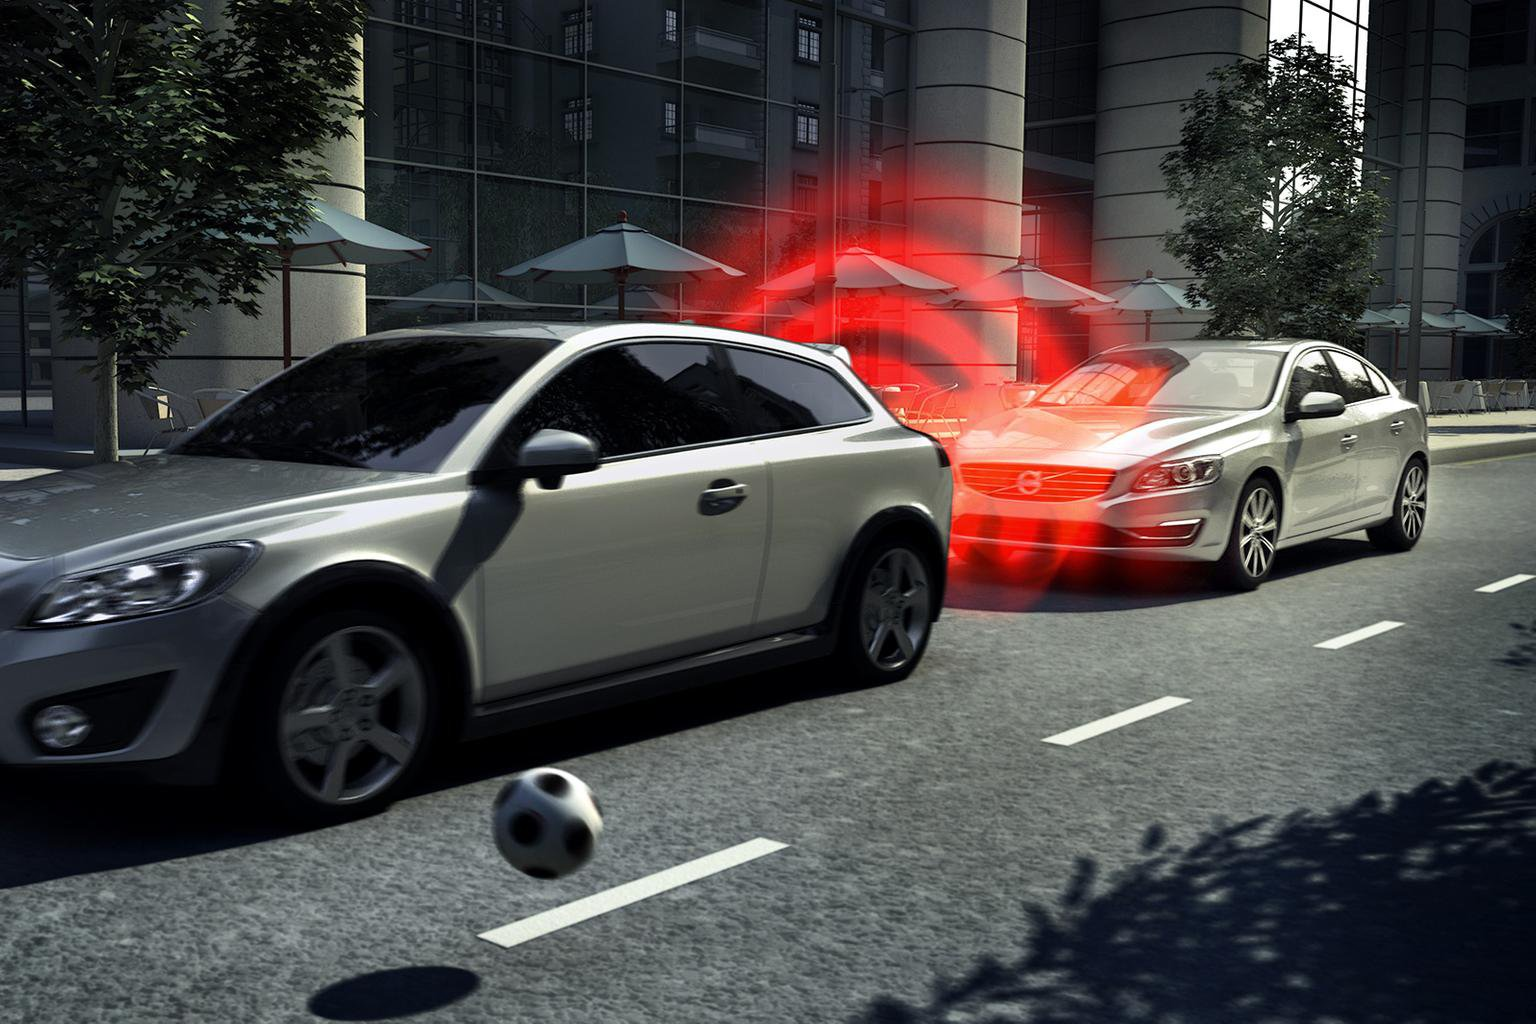 Autonomous Emergency Braking should be fitted as standard, says safety body